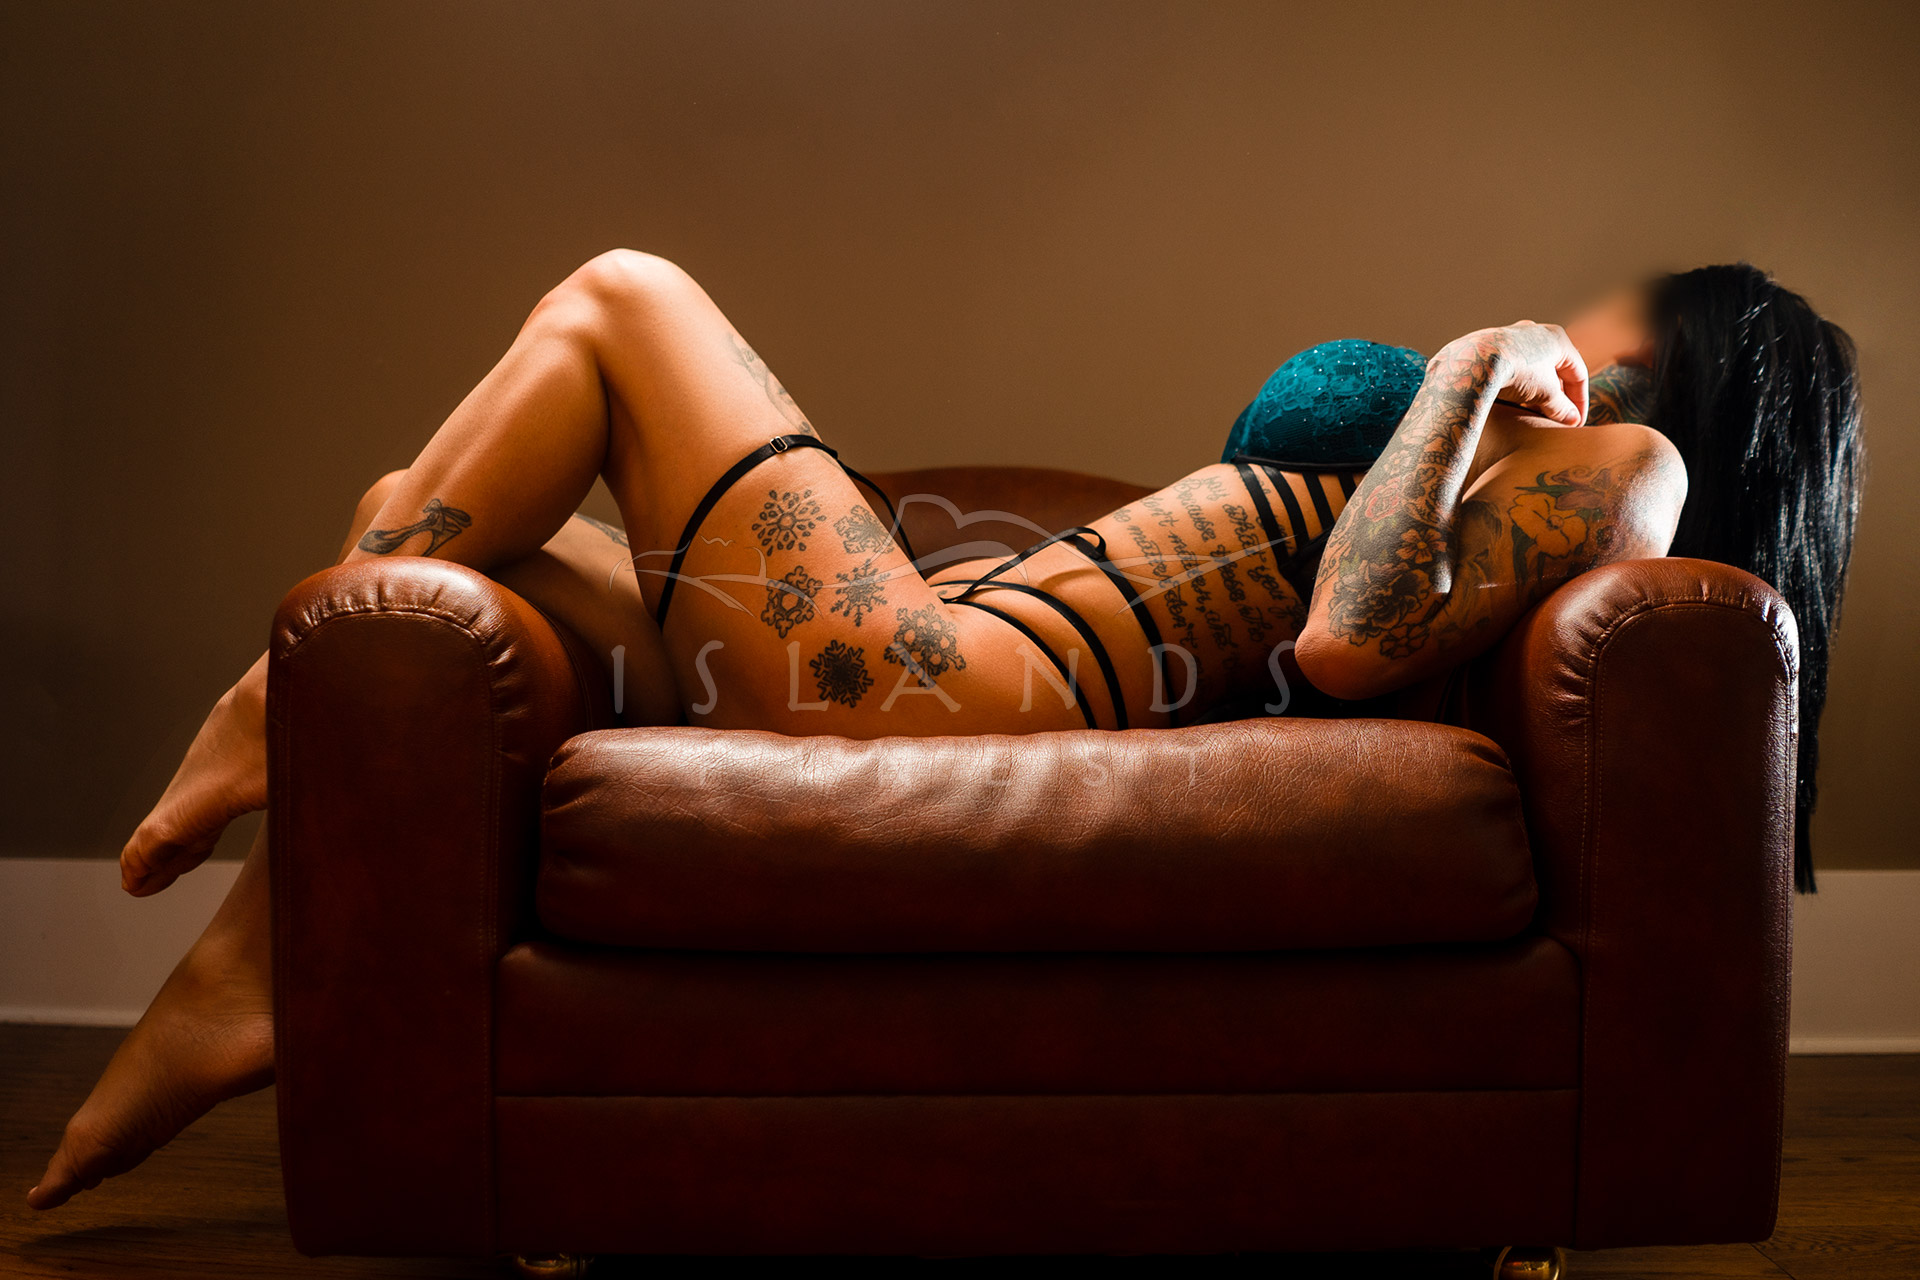 Escort lexi lying on a chair at the Island's Finest escort mansion in Victoria BC